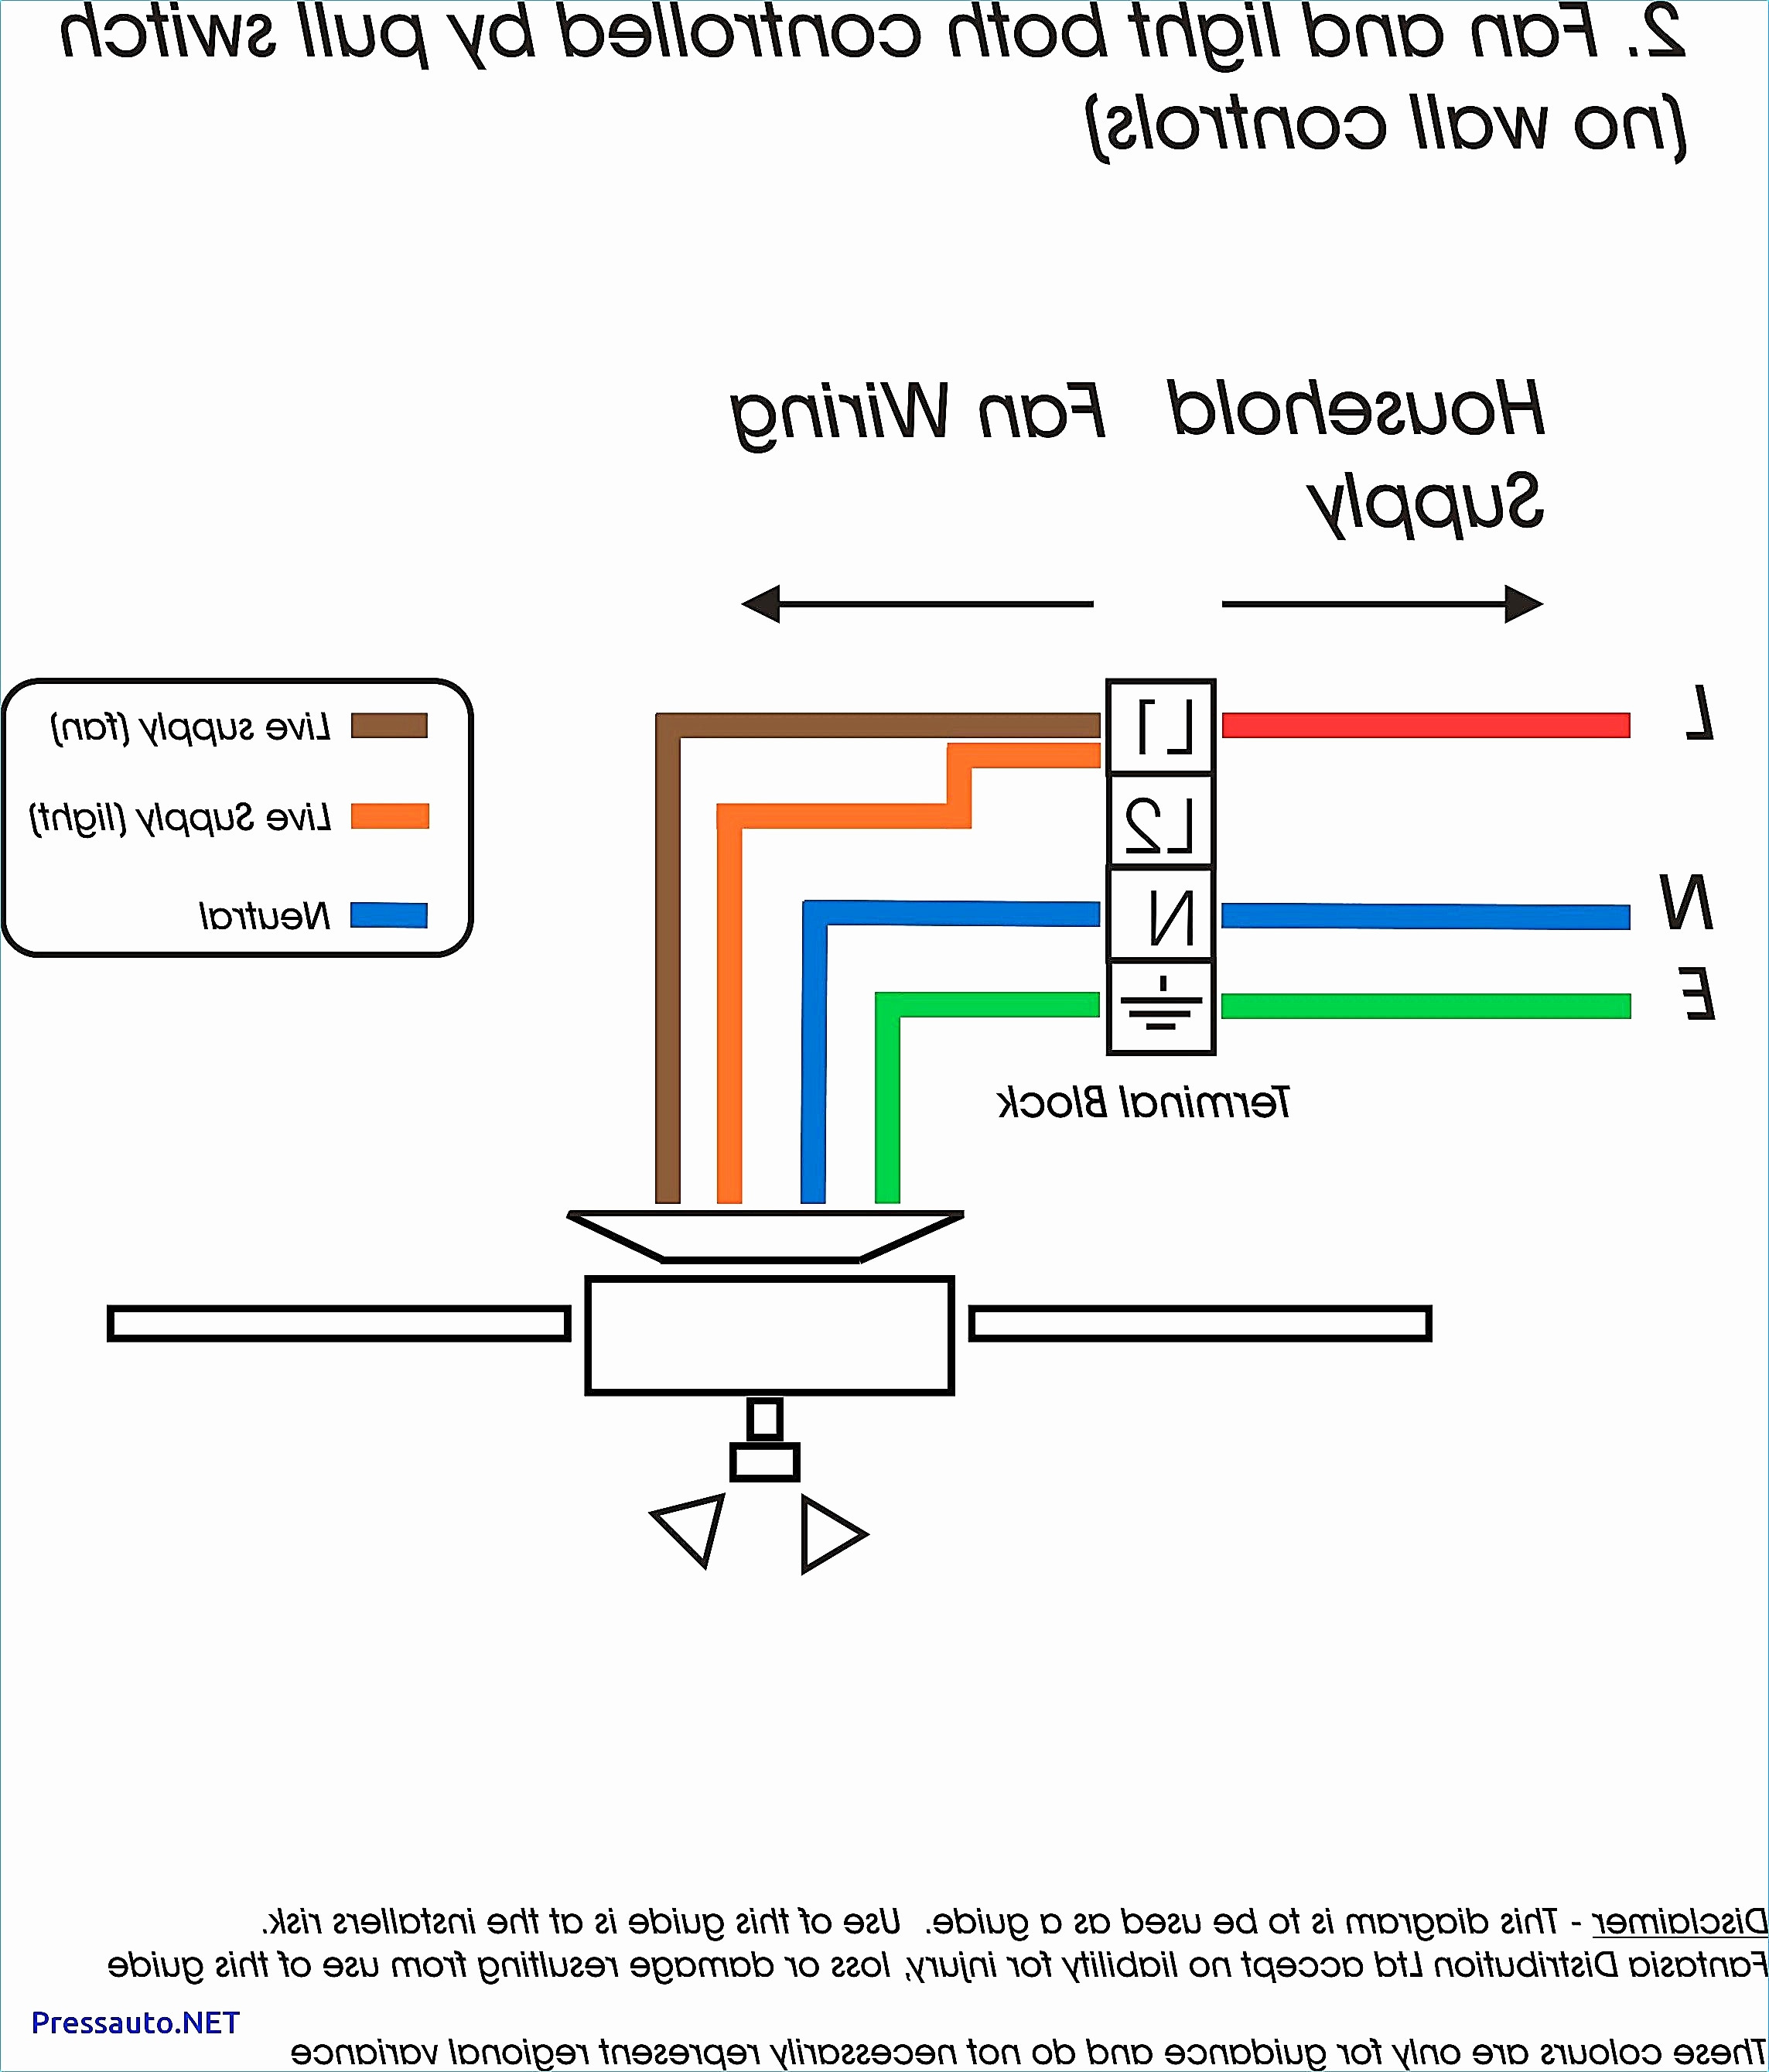 dish network wiring diagram Collection-Wiring Diagram for Cat5 Network Cable Fresh Wiring Diagram Cat 5e Wiring Diagram Awesome 568b Ethernet 5-i